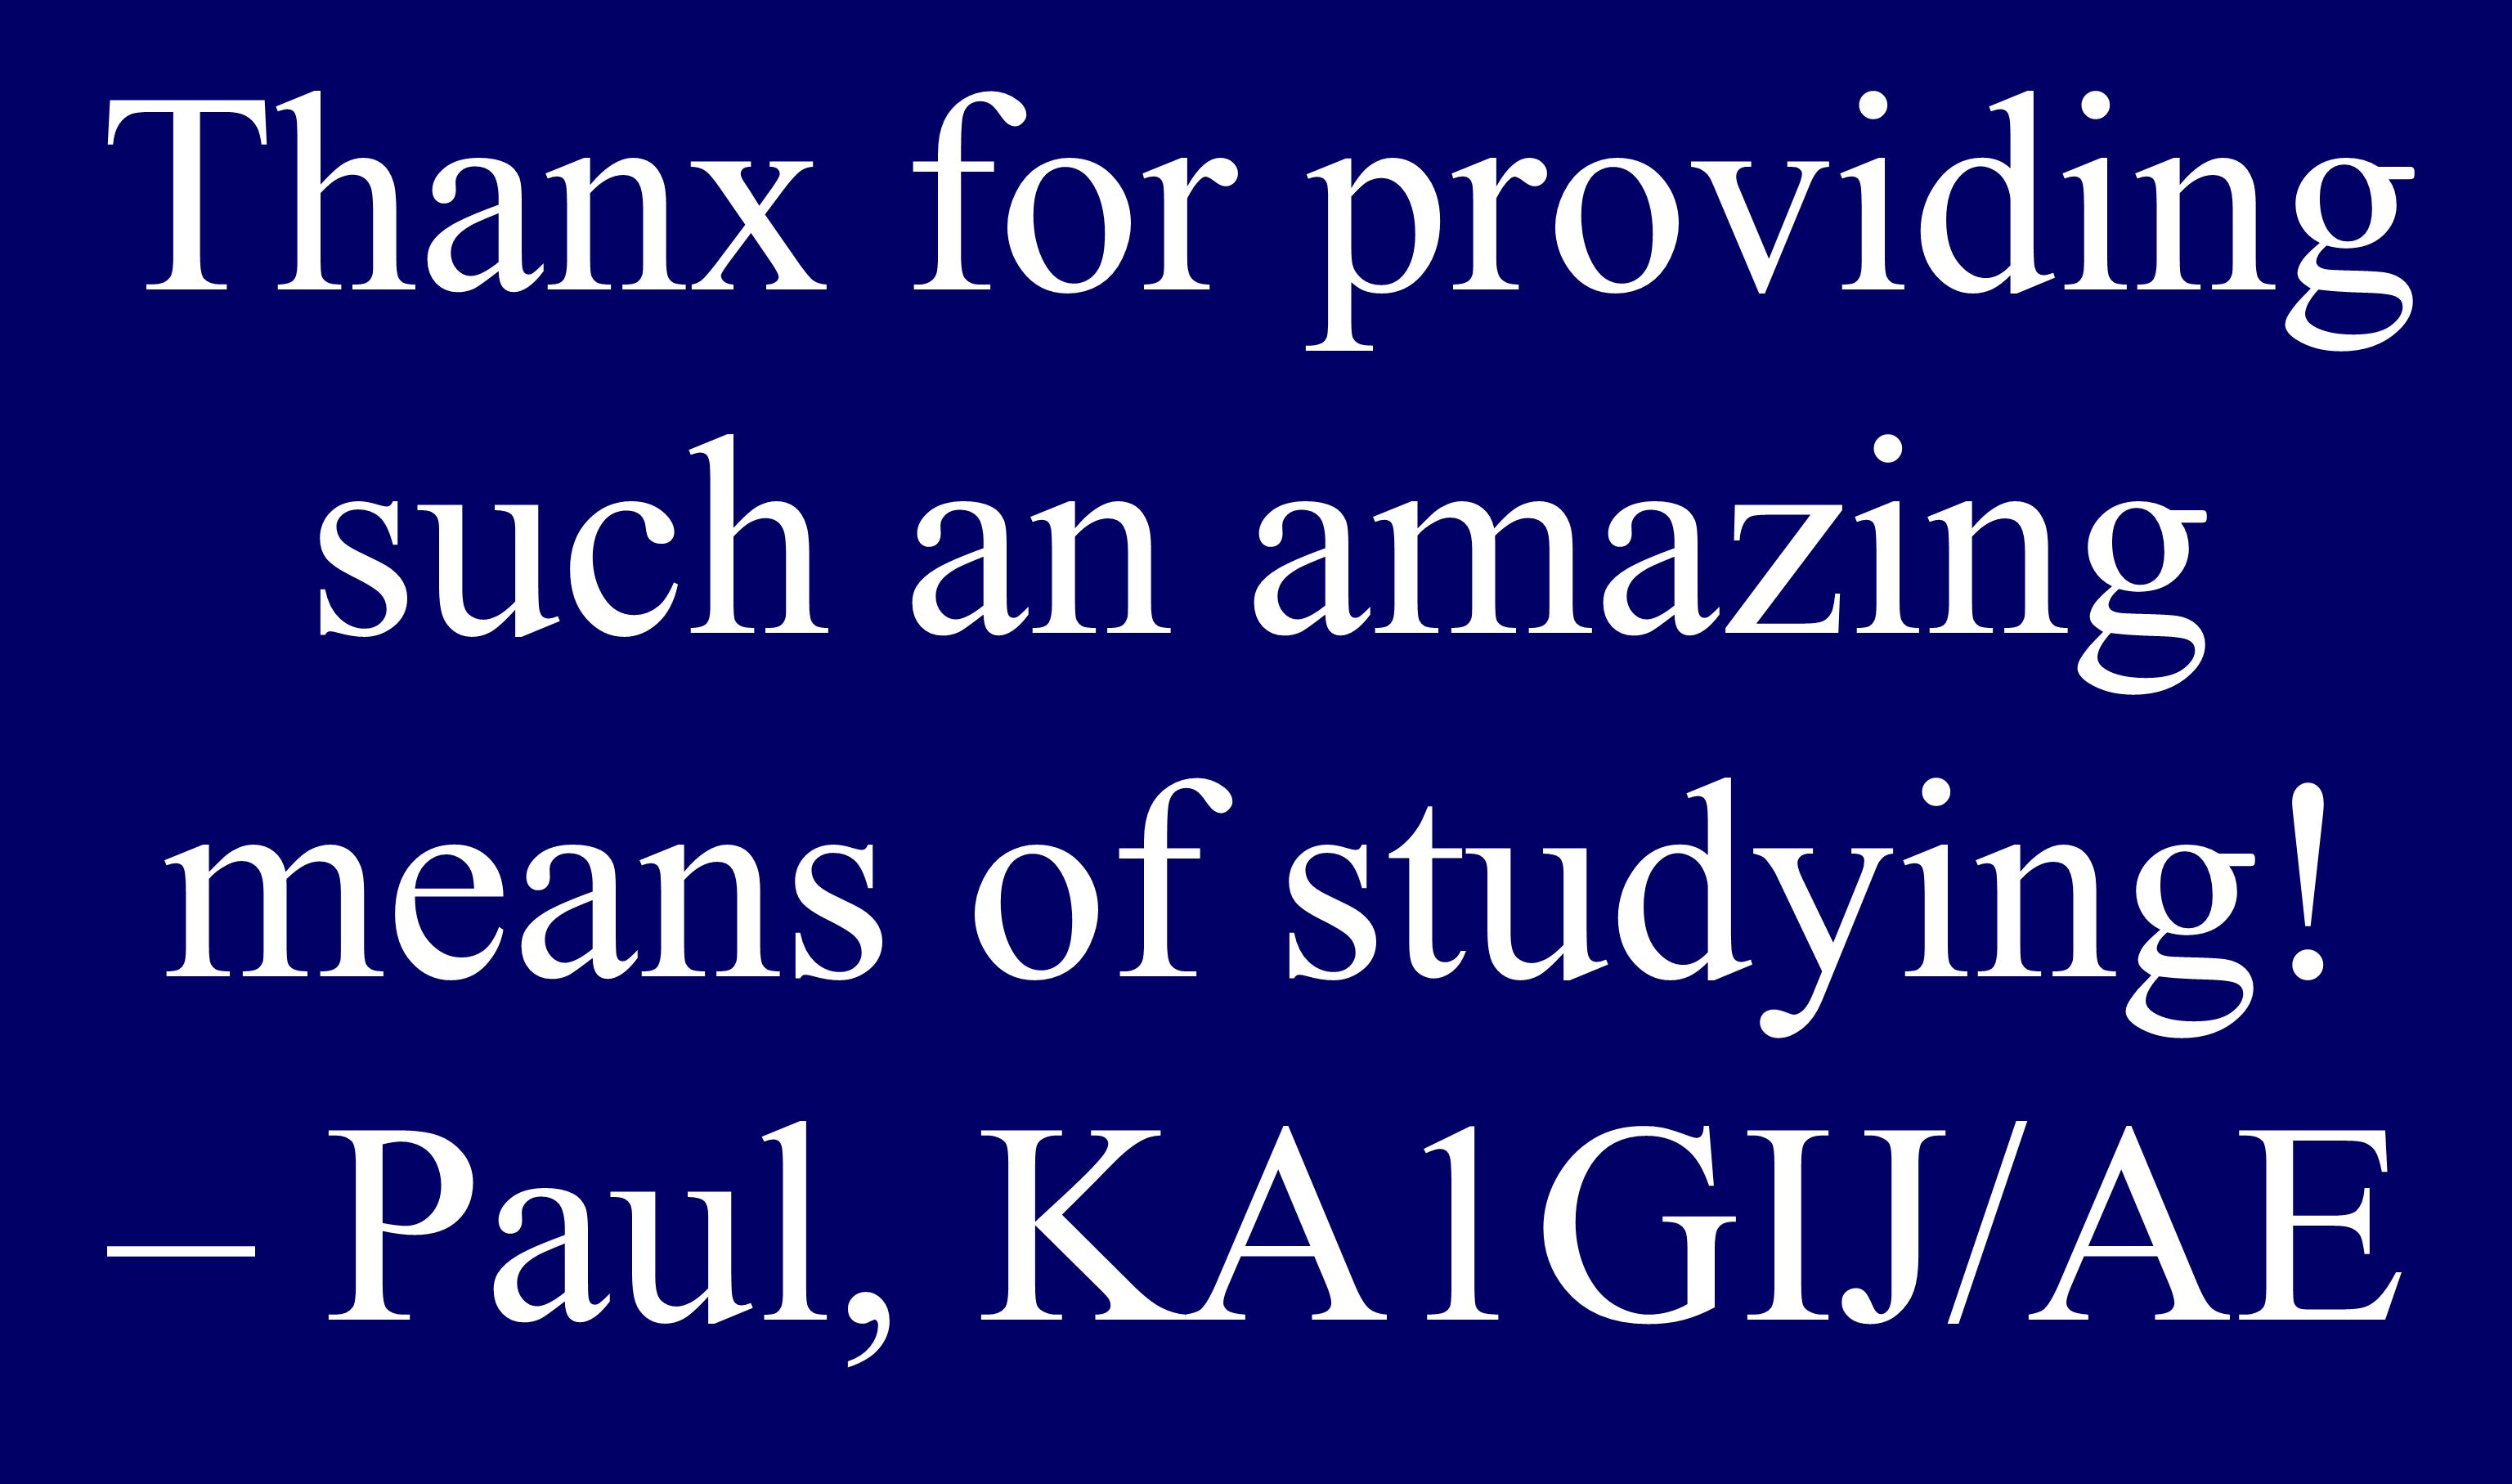 Thanx for providing such an amazing means of studying! – Paul, KA1GIJ/AE